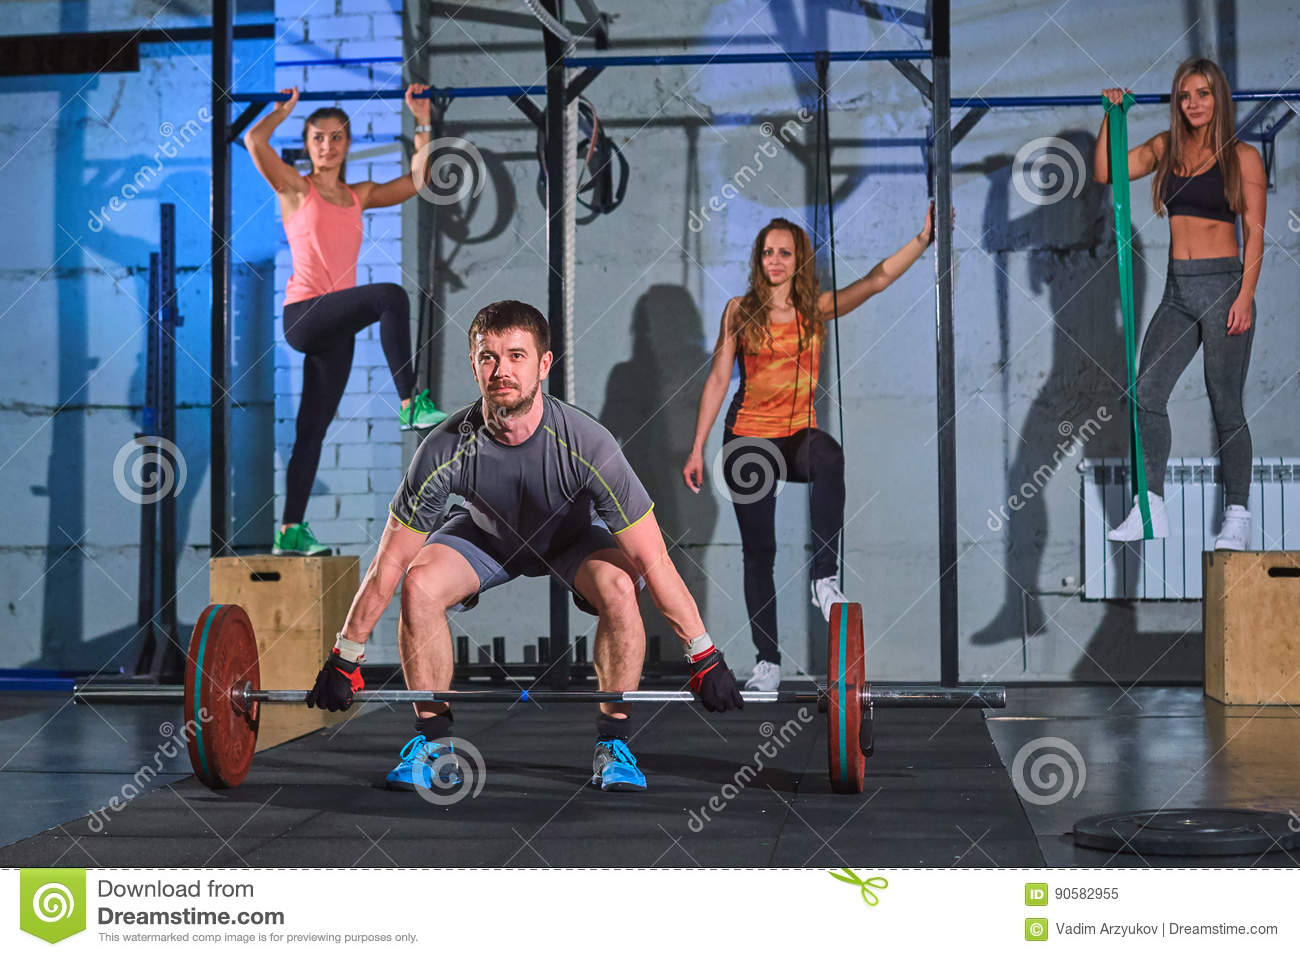 Muscular man doing squats with barbell in a gym, Beautiful girls in the background